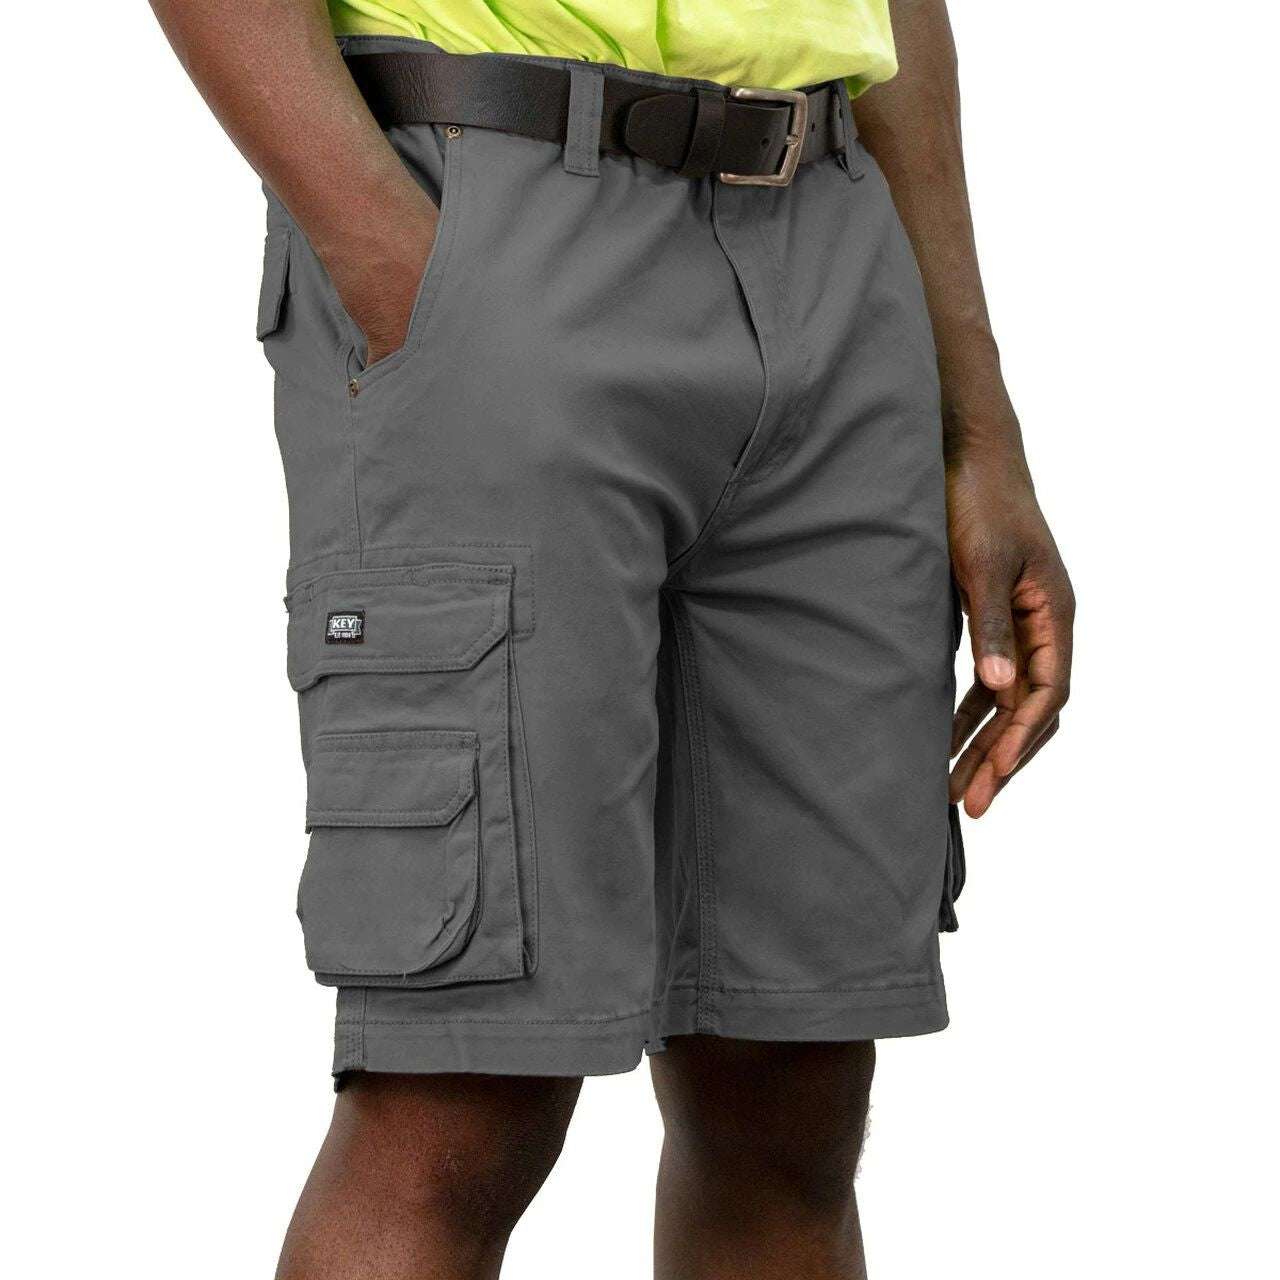 'KEY' Men's Cargo Pocket Flex Short - Smoke